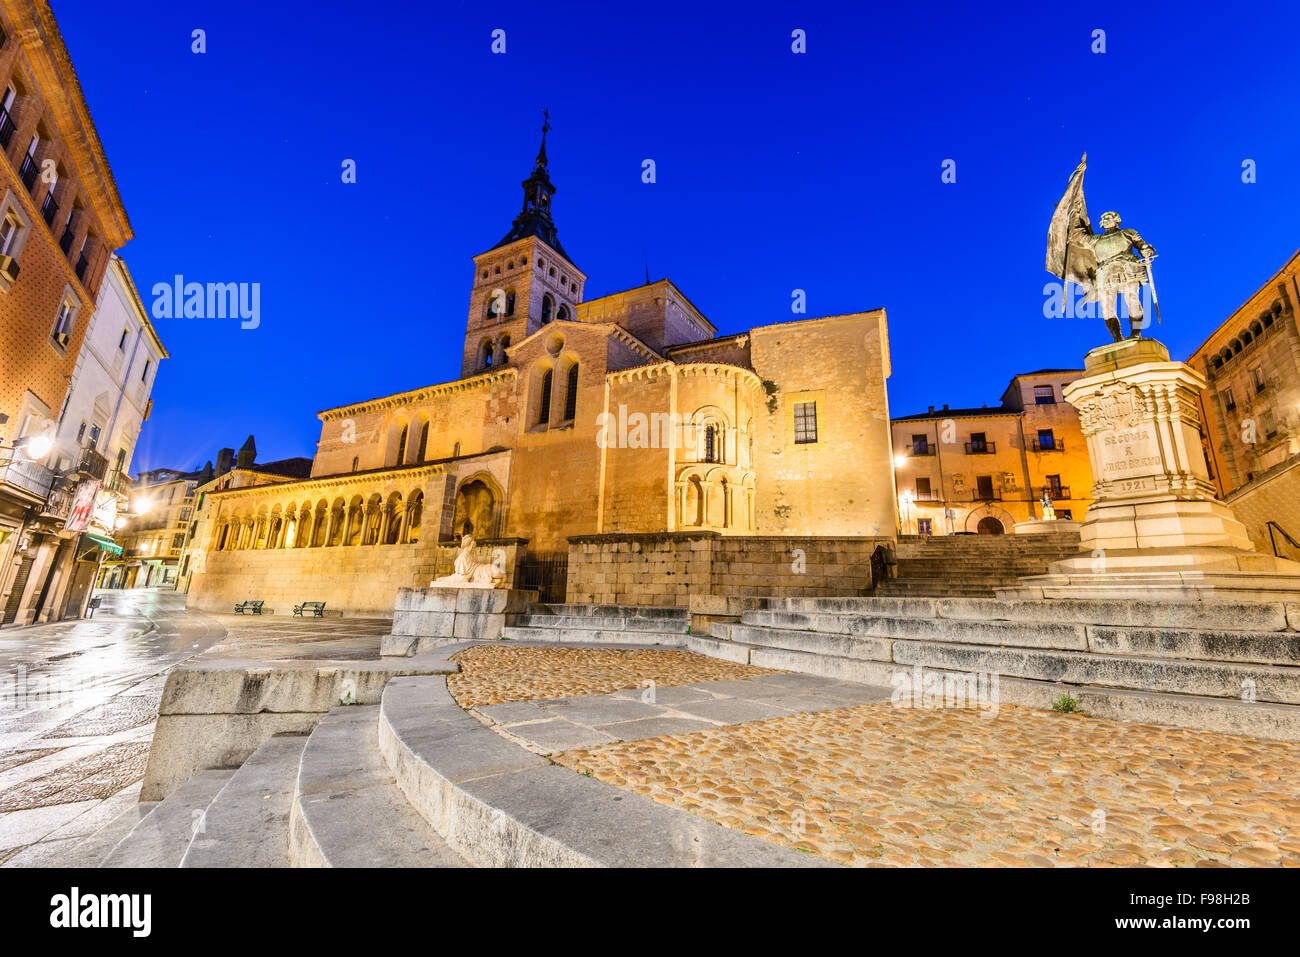 Segovia, Spain. Plaza de Medina del Campo with San Martin Church, twilight of Castile, Castillia. - Stock Image